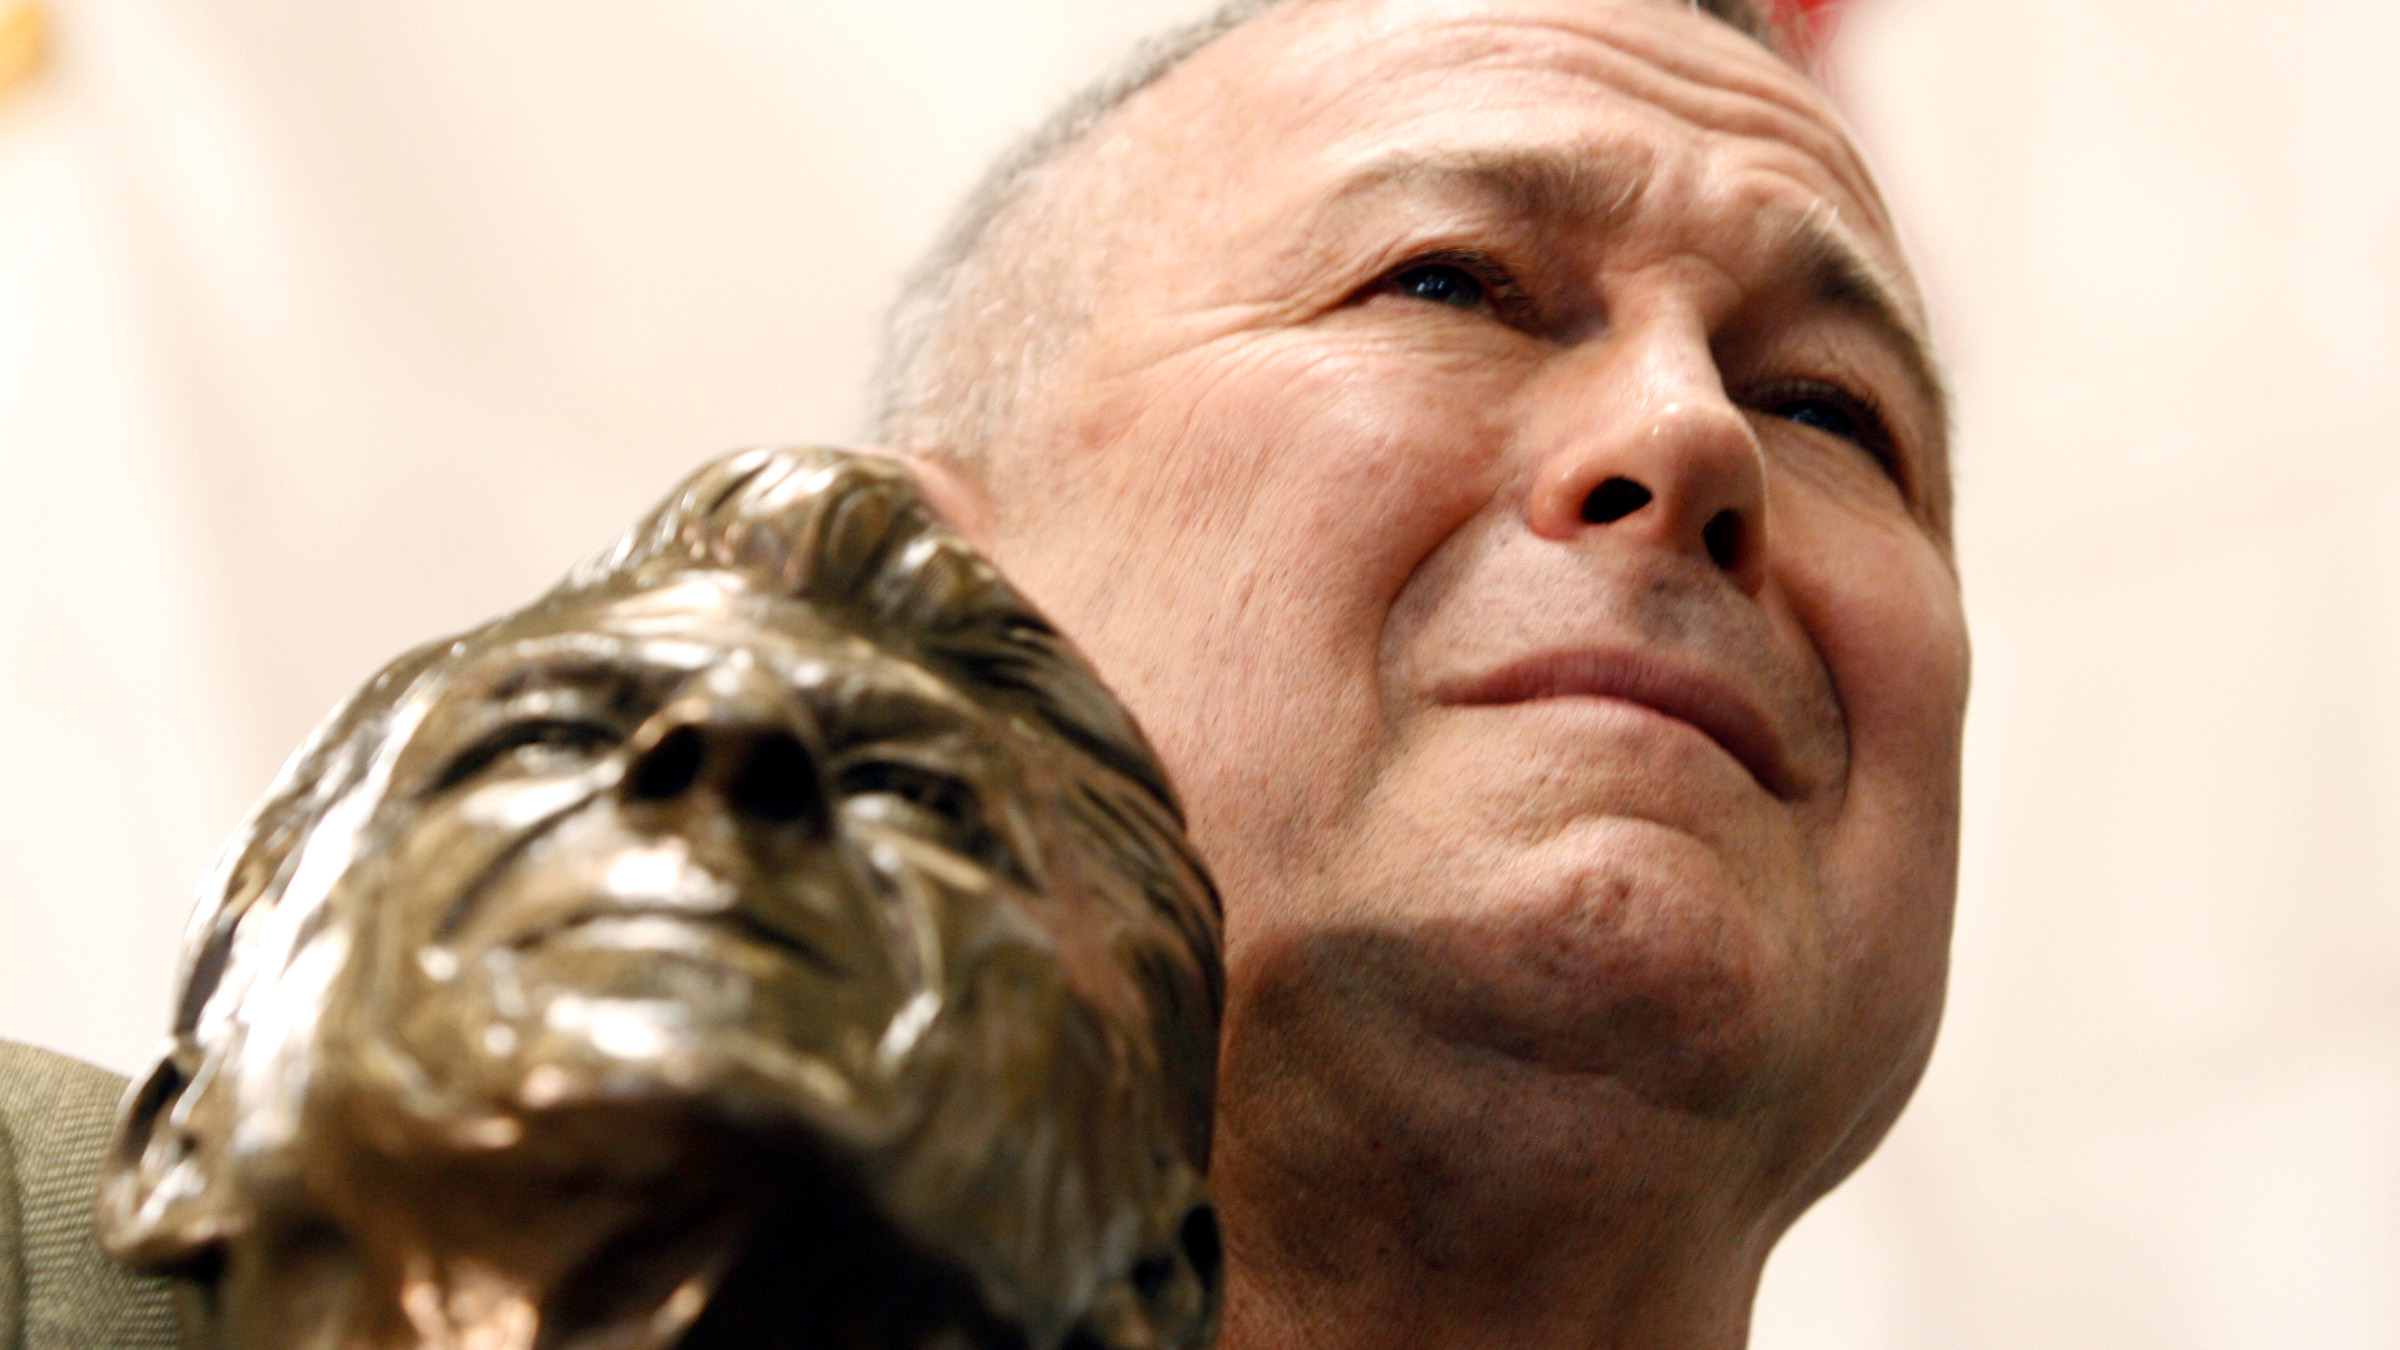 Rep. Dana Rohrabacher, R- Calif., holds a bust of Ronald Reagan as he listens to Republican presidential hopeful former Massachusetts Gov. Mitt Romney campaign at Bassett Furniture in Fountain Valley, Calif., Thursday, Jan. 31, 2008.